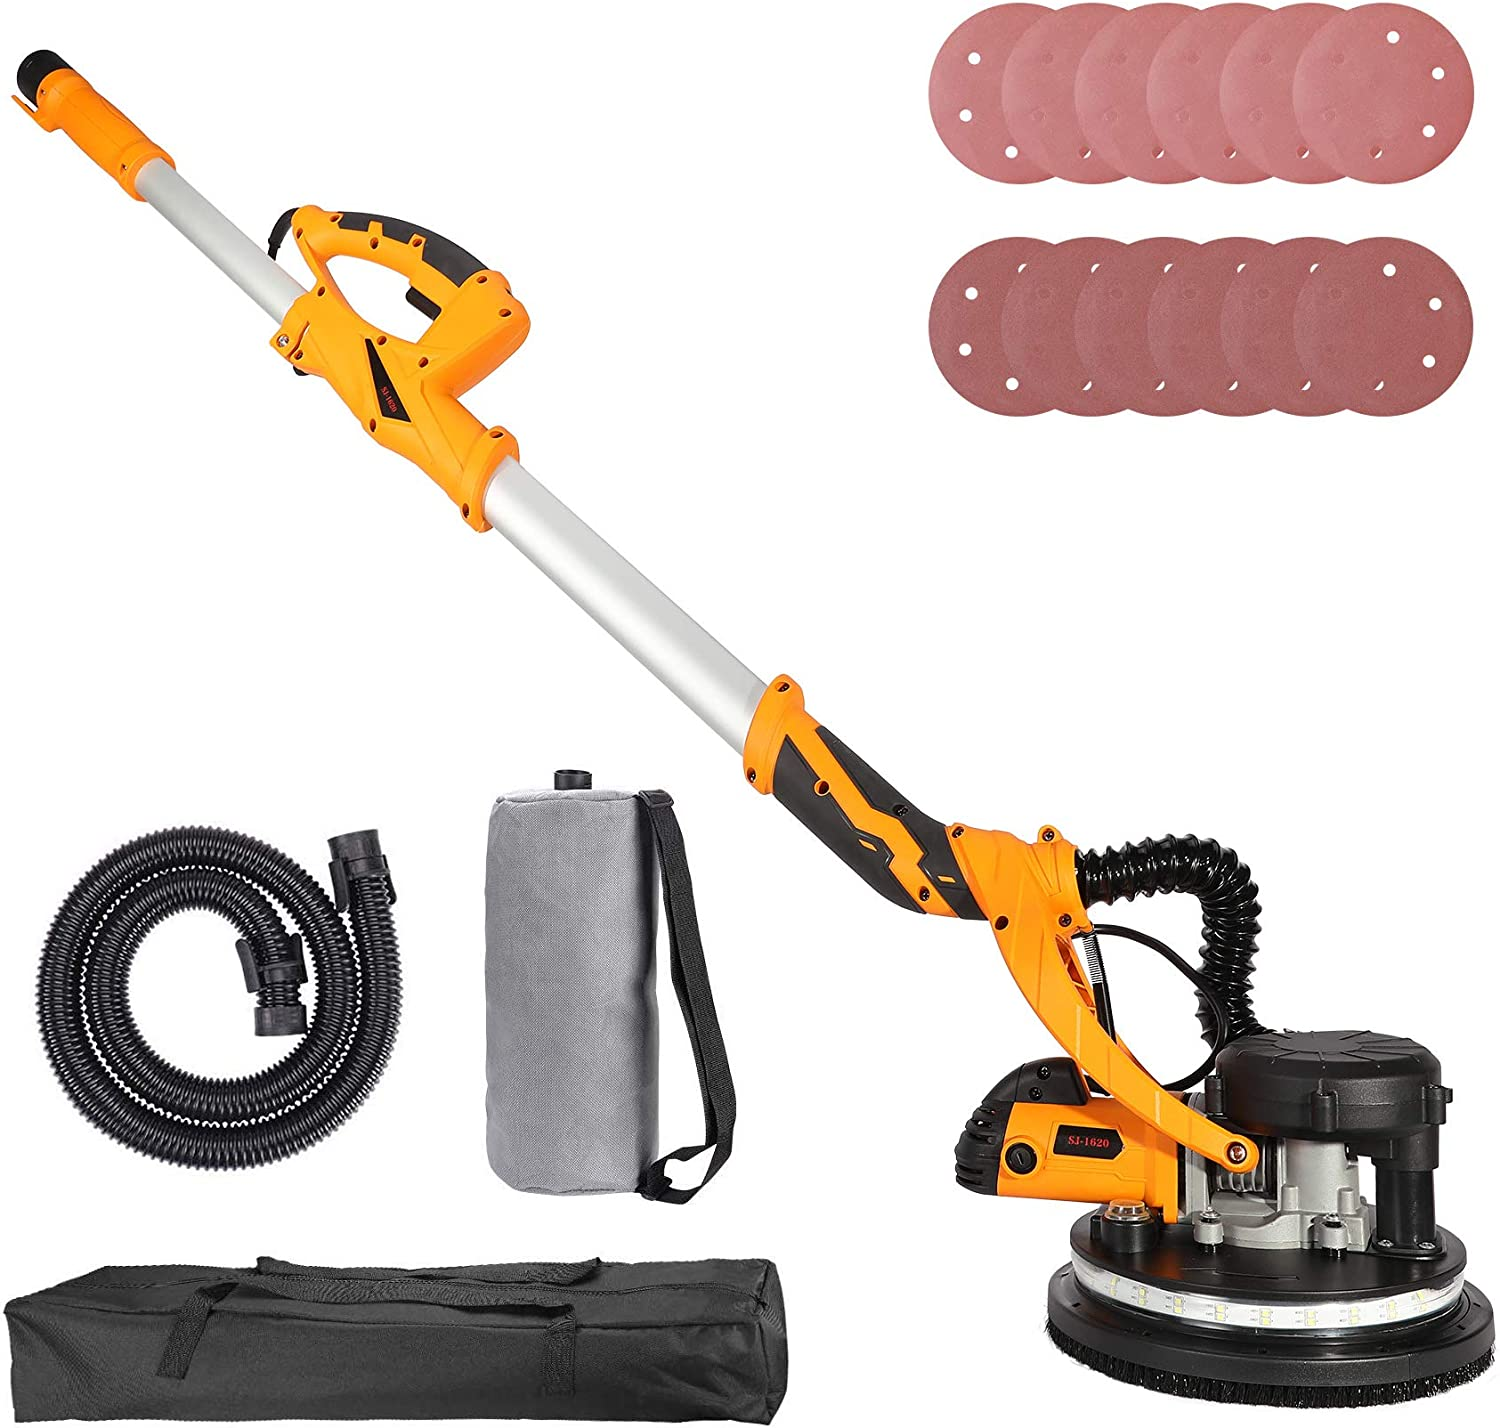 Orion Motor Tech Swivel Head Extendable Adjustable Speed 850W Drywall Sander with Integrated Vacuum System, 5-Speed LED High Visibility Wall Grinding Machine and 12 Sanding Disks